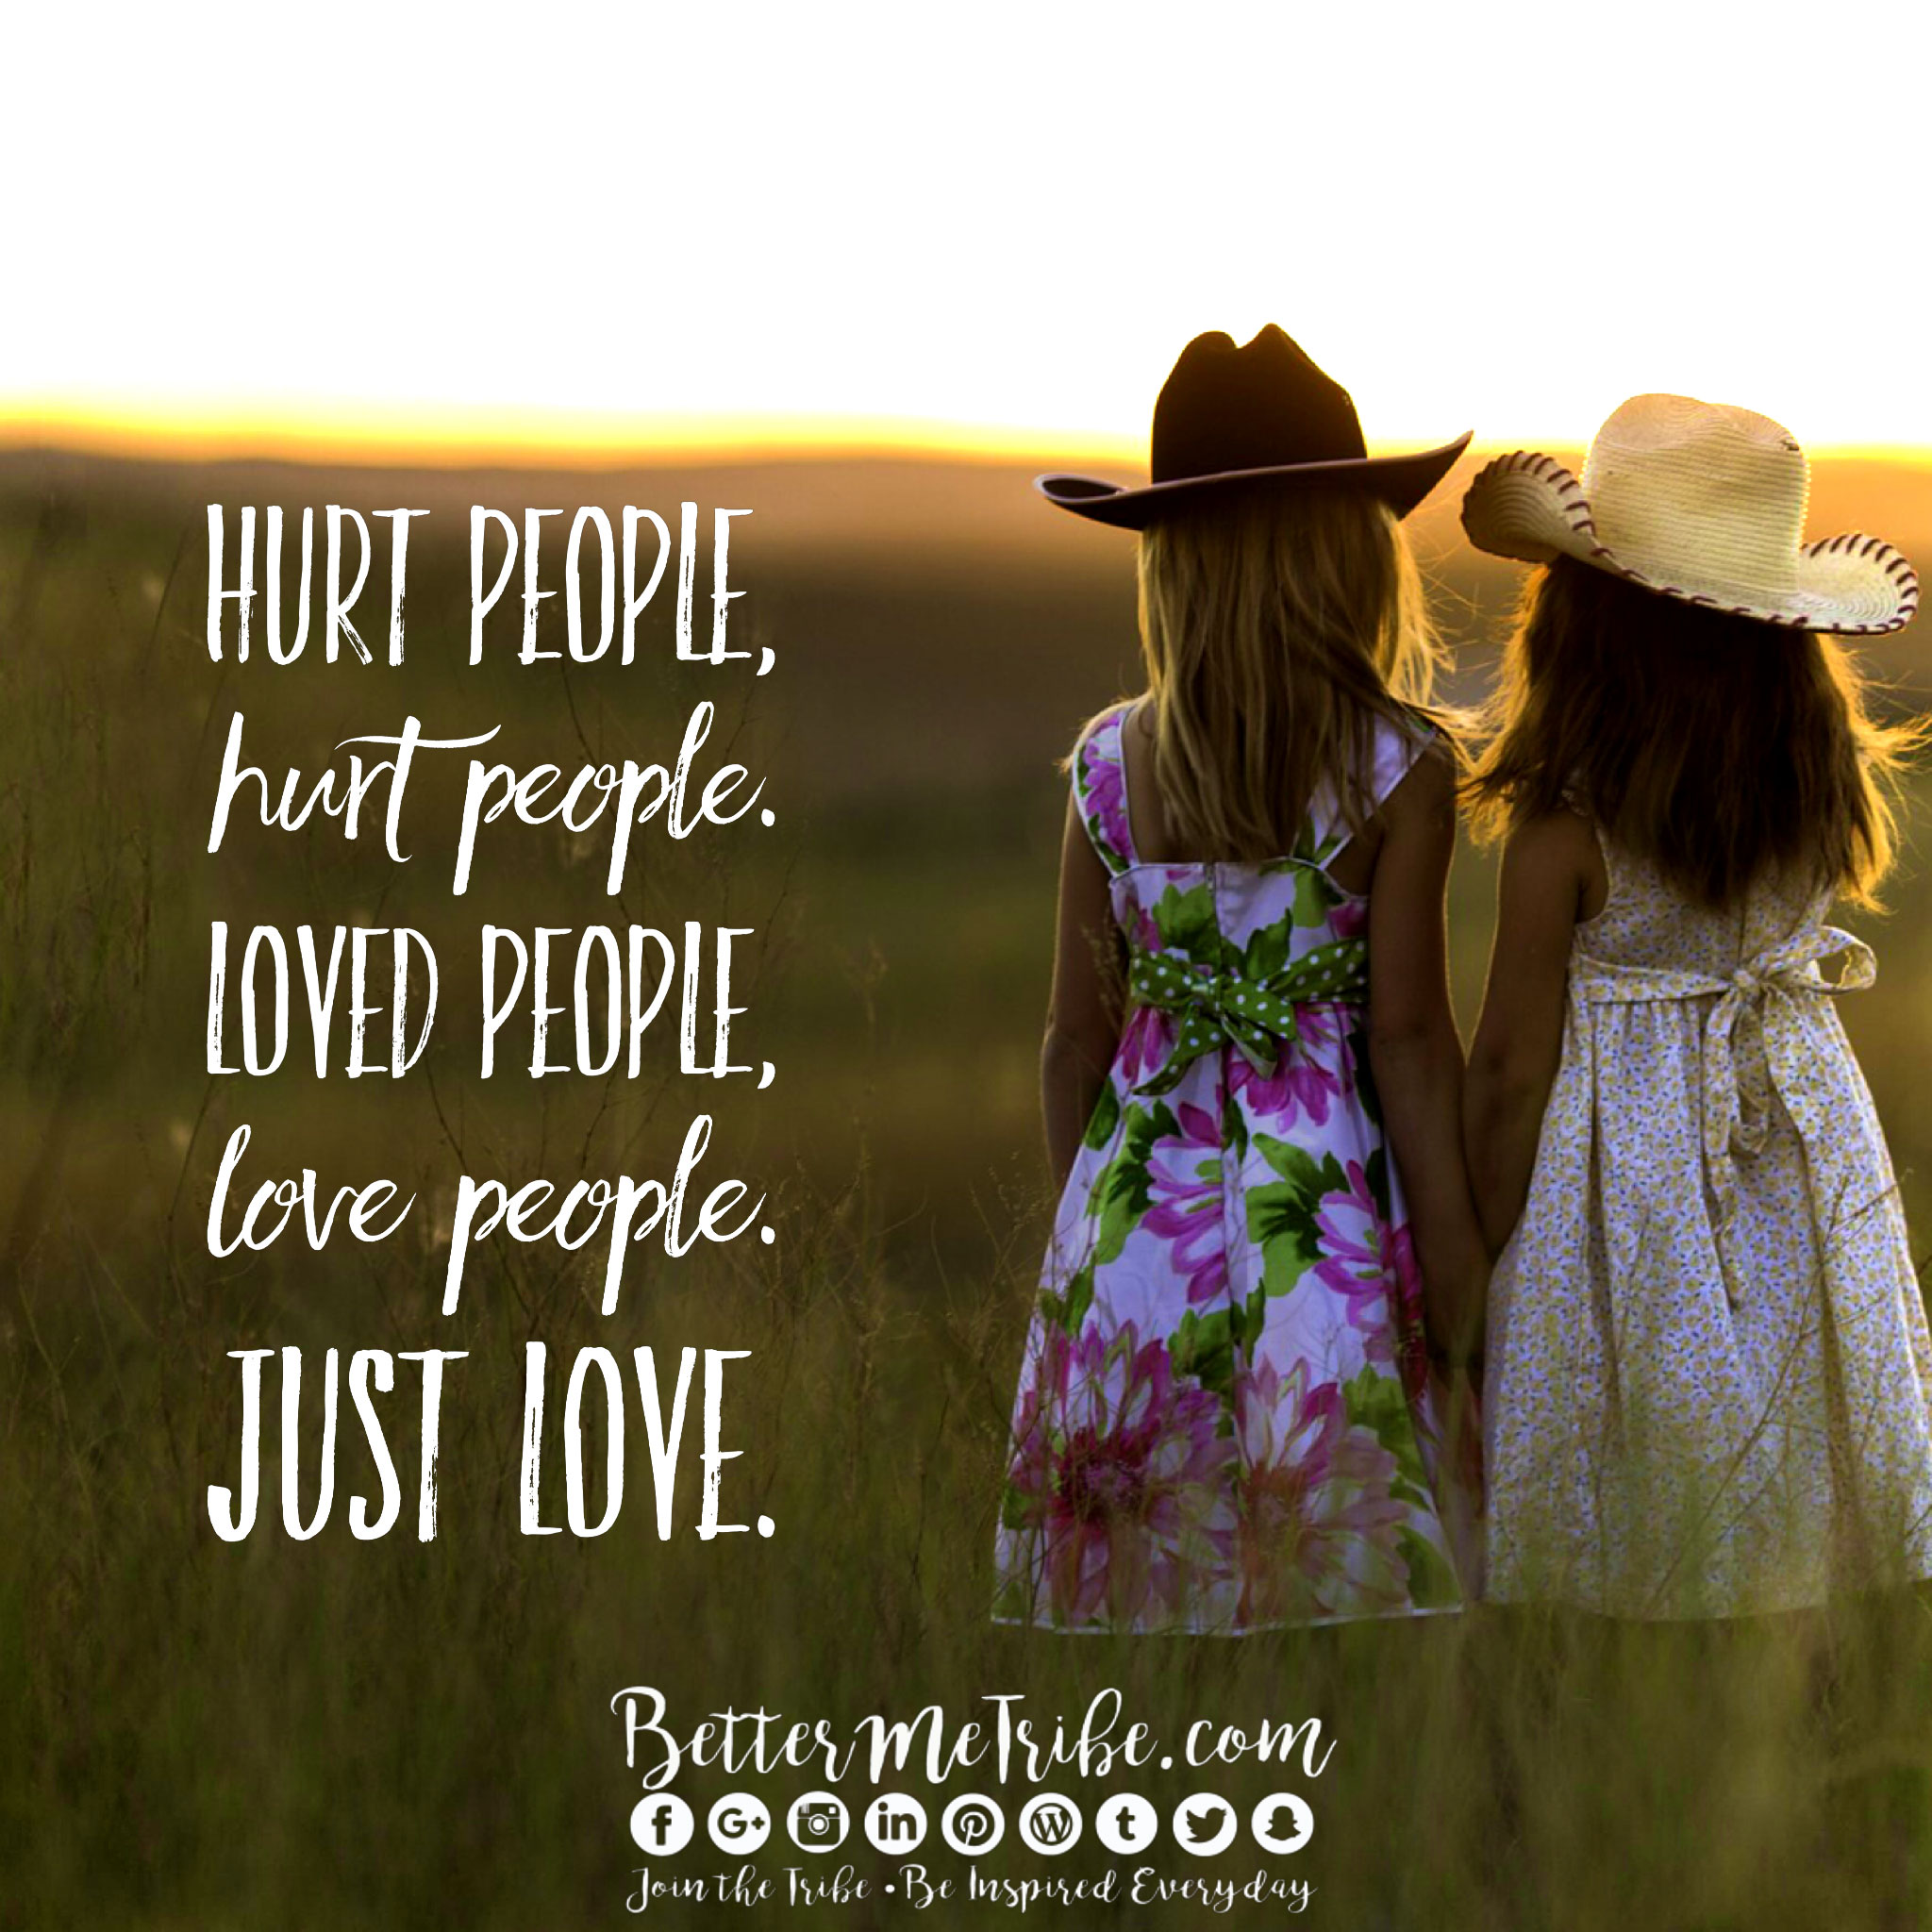 hurtpeoplelovepeople-web